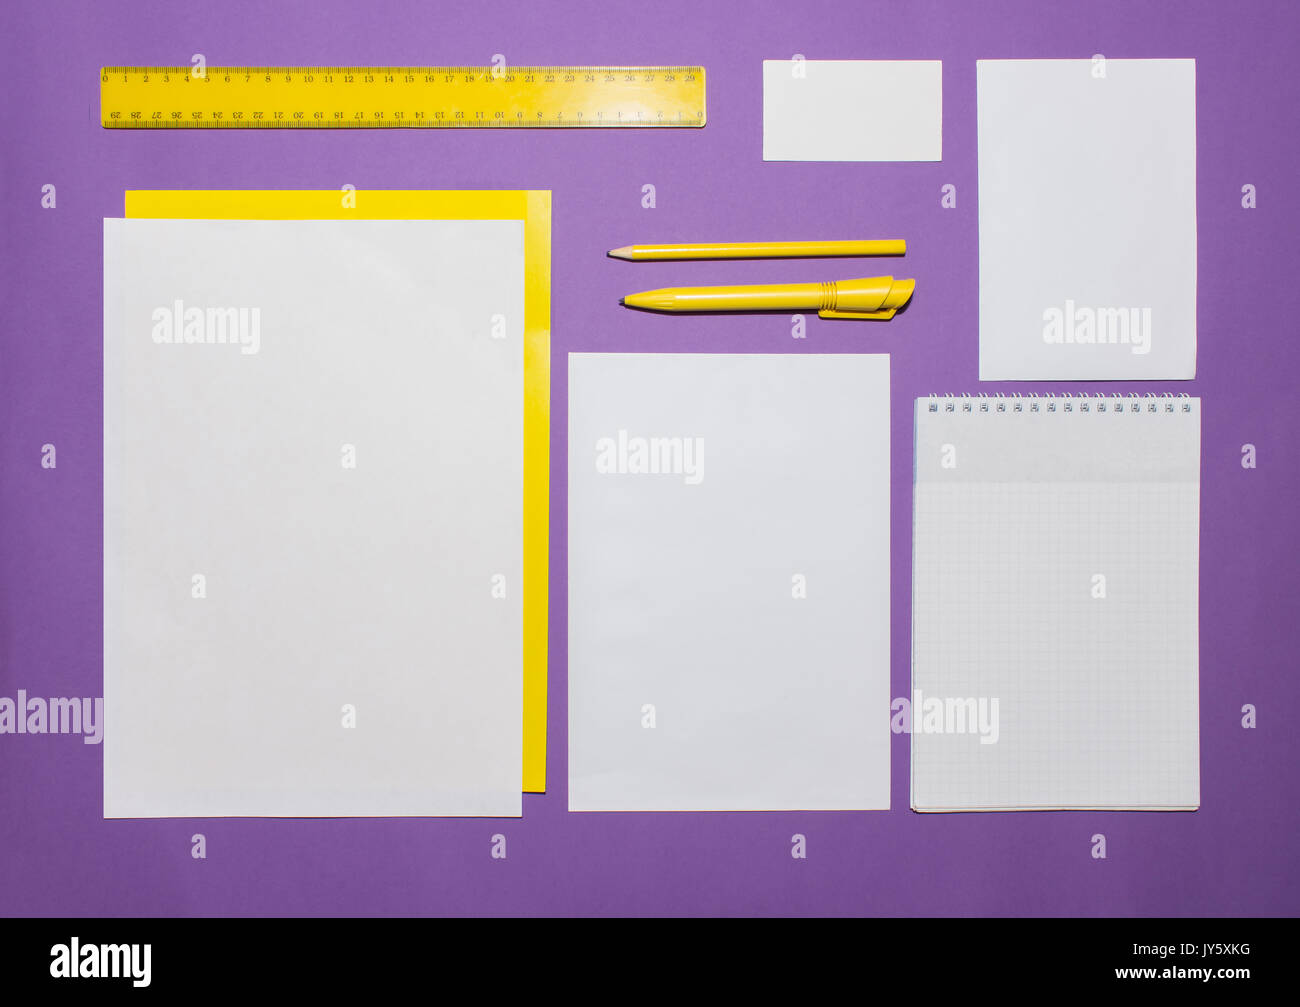 Document Template Stock Photos & Document Template Stock Images - Alamy